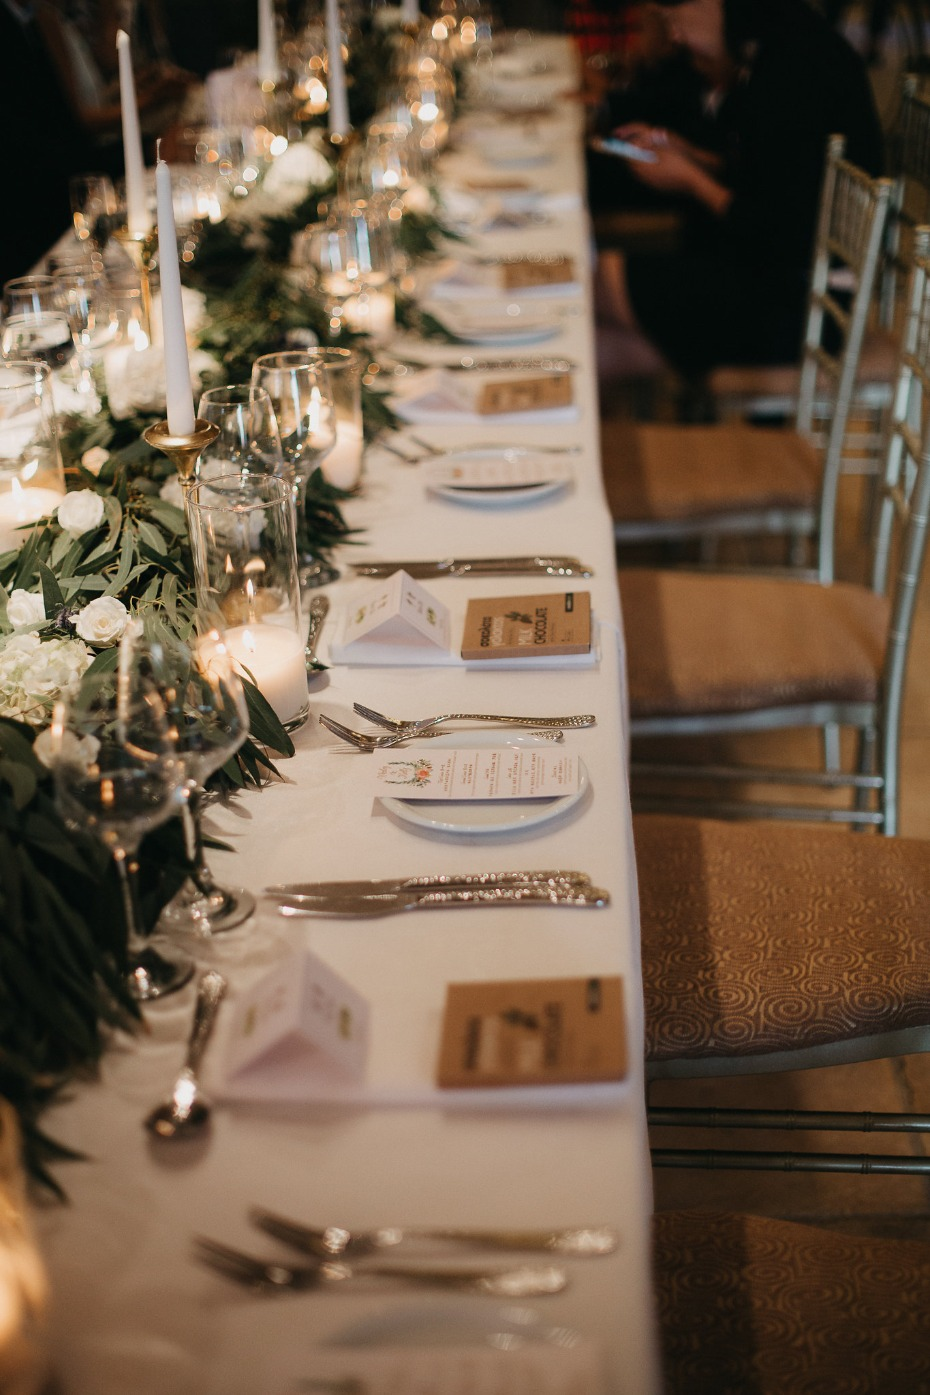 Green and white table decor with candles